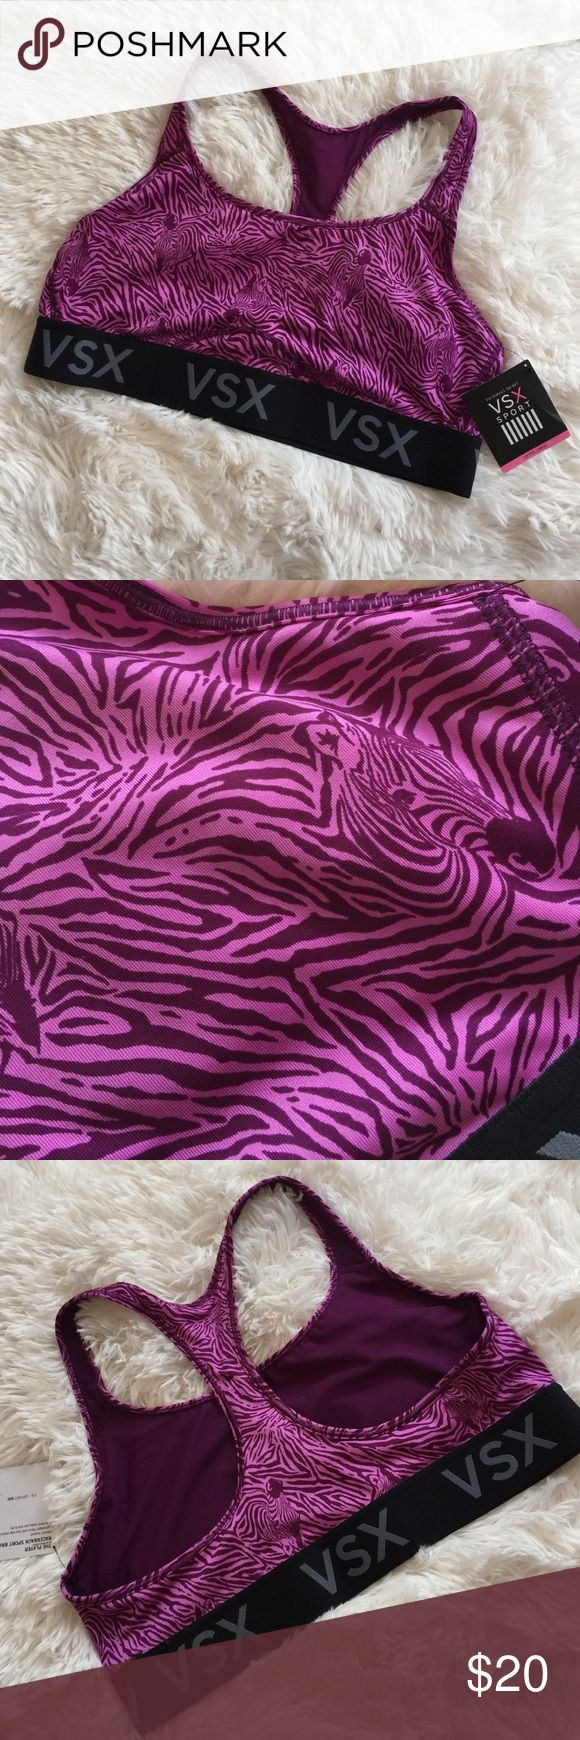 """Victoria Secret Sports Bra Purple Zebra print sports bra. Medium support. Band is 15"""" across laying flat. I am a 36 DD and the band part is a little big but the rest is perfect. Hope this helps. If you have any questions please ask. Never worn NWT Victoria Secret Sport Other"""